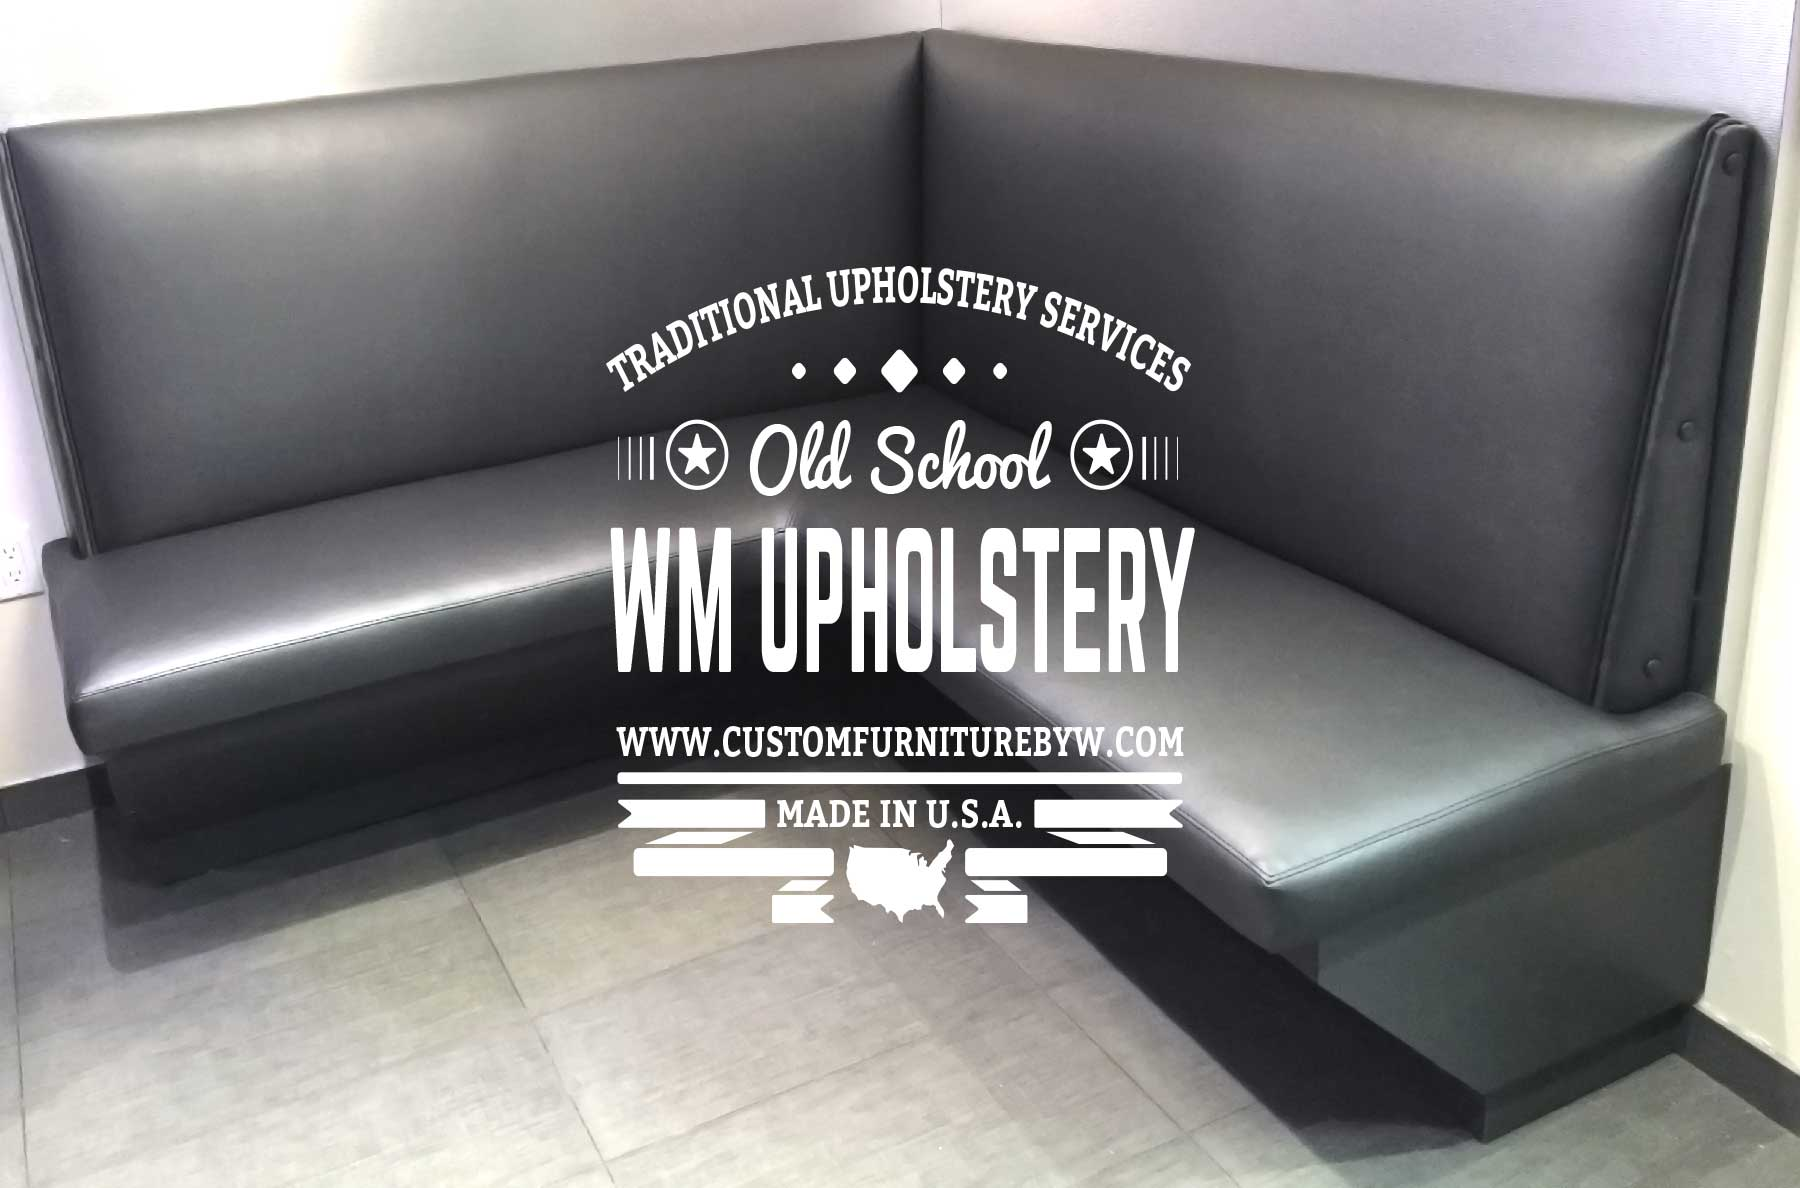 Commercial upholstery Marina del Rey California. Restaurant booth upholstery Marina del Rey CA